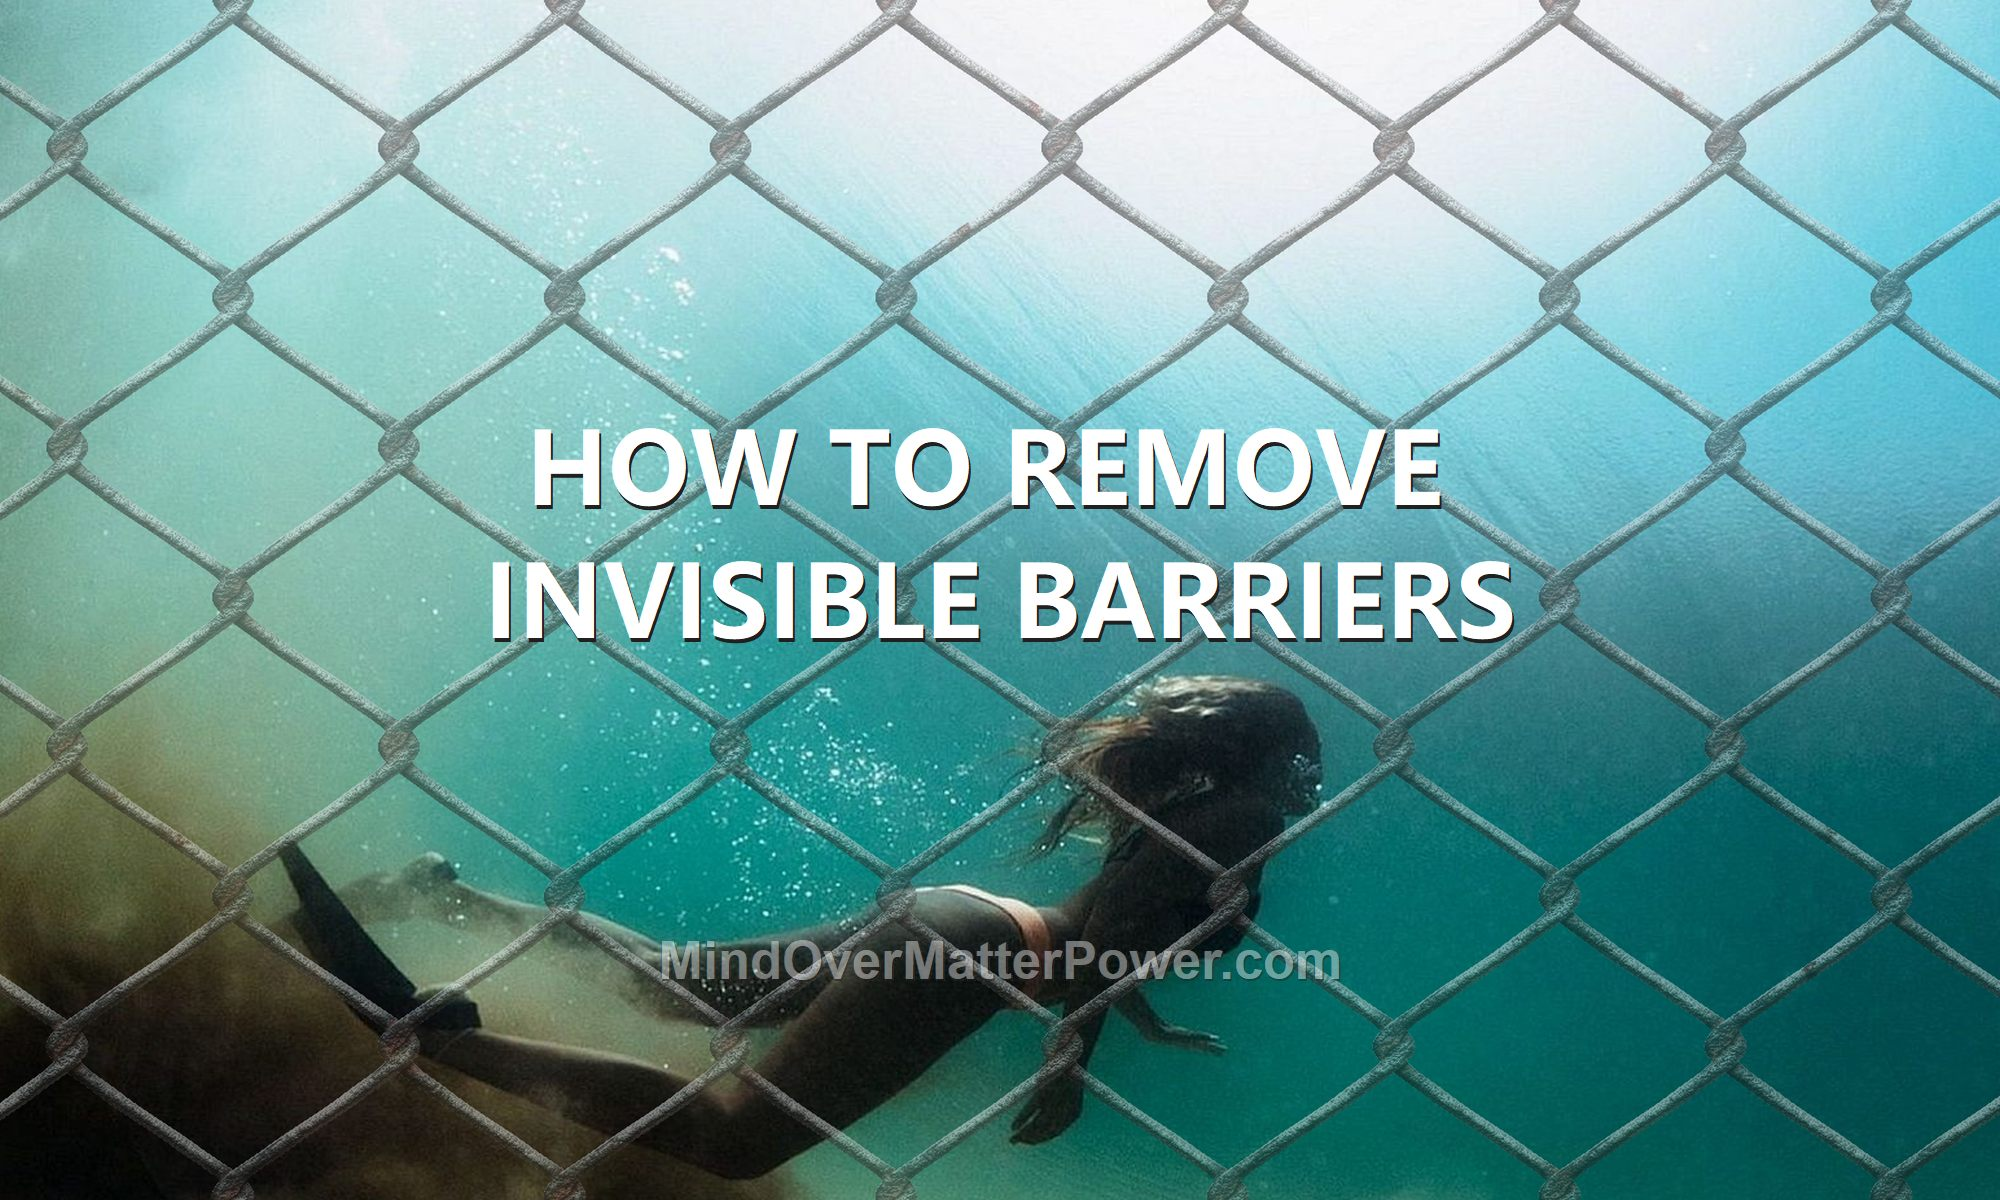 woman-swimming-behind-barrier--epicts-keys-to-remove-invisible-barriers-to-success-5-tips-ways